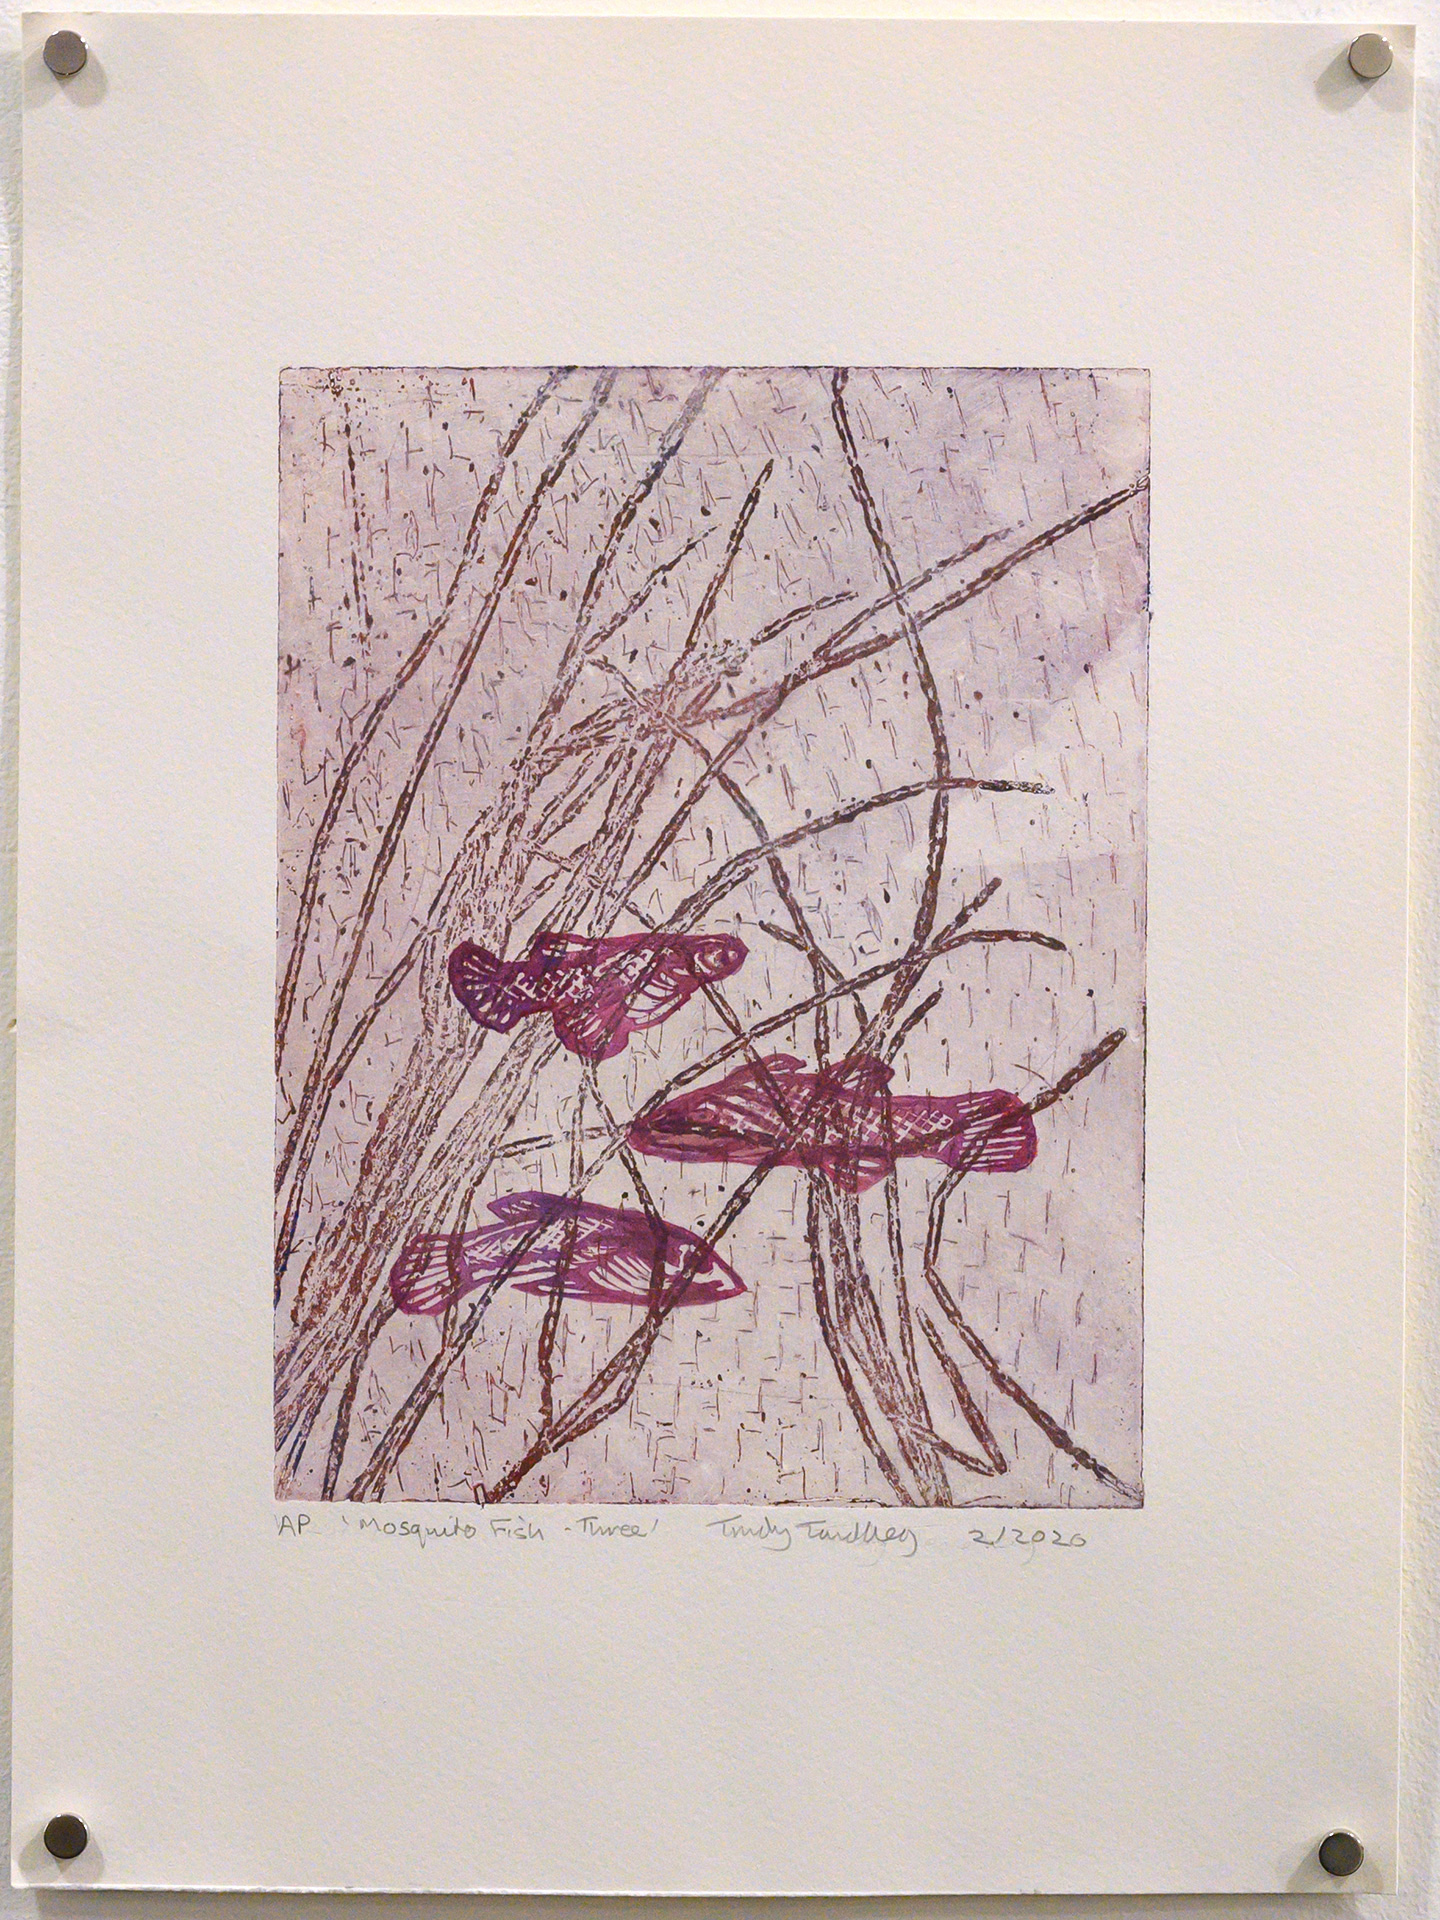 Unframed artwork by Trudy Tandberg of 3 small fish in rushes with light purple background